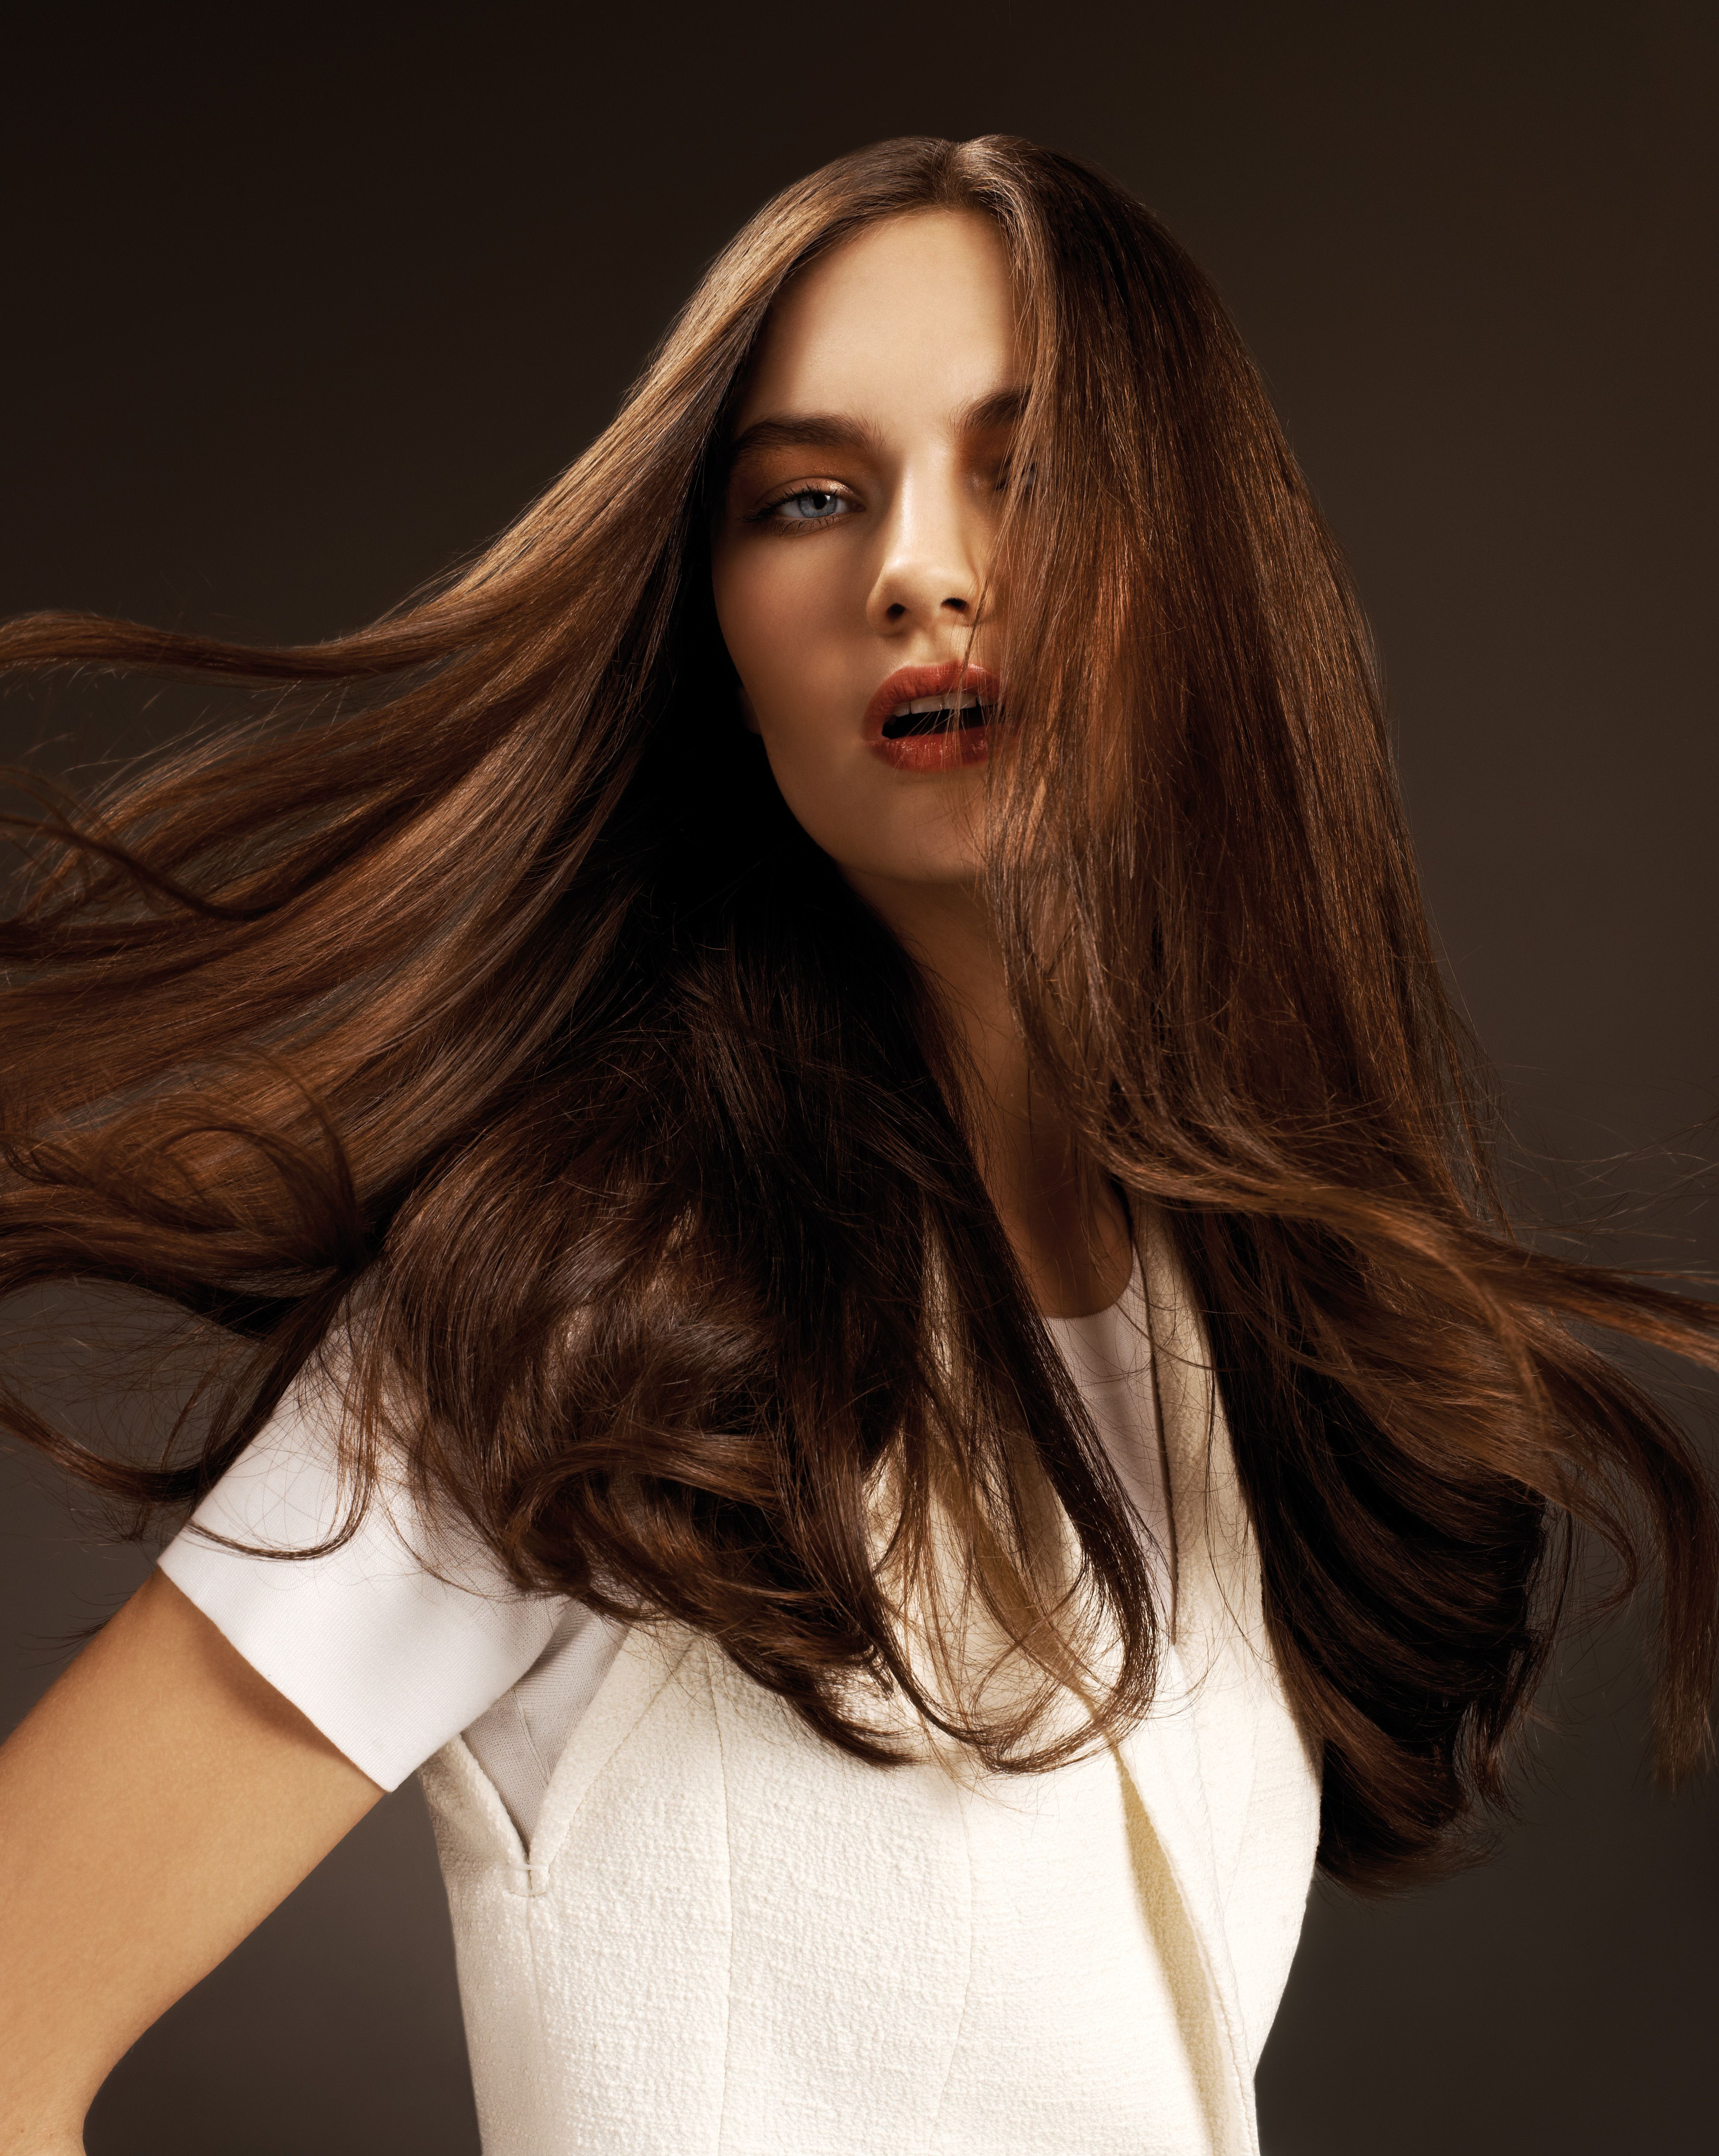 Framcolor Glamour Long Hair Women Professional Hairstyles Hair Beauty